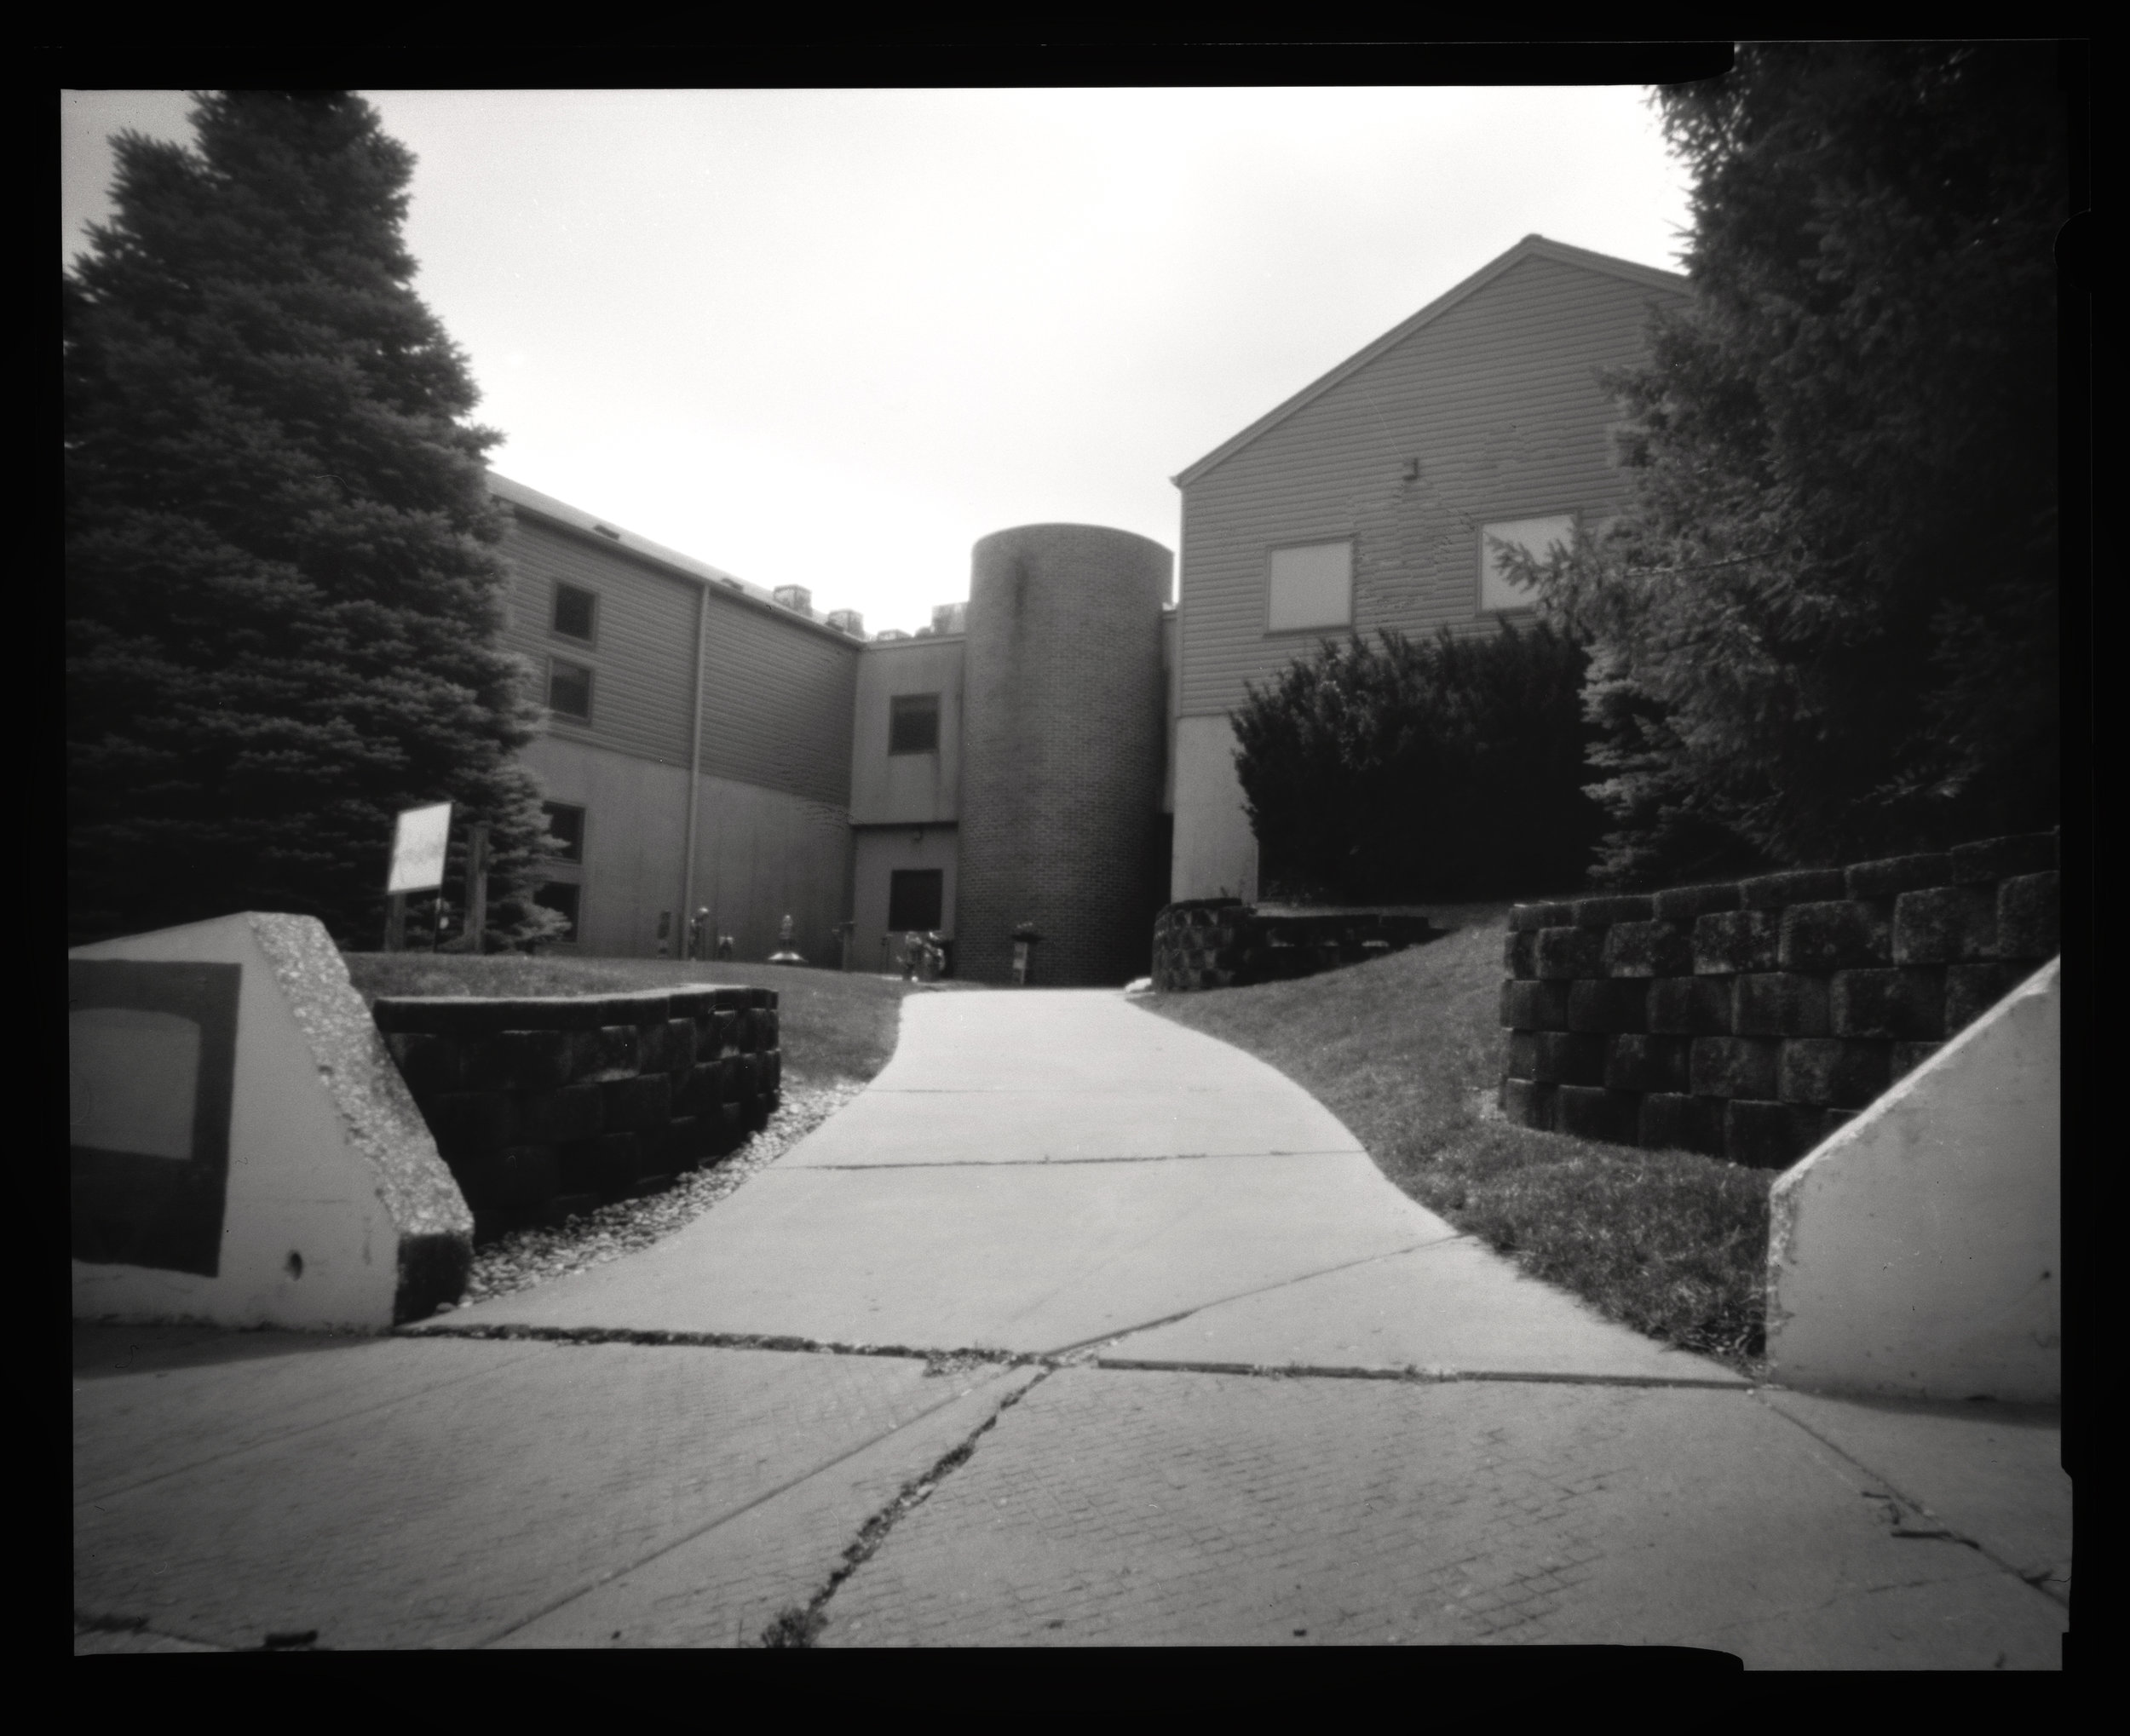 Pinhole Camera: New Art Studios Building, Augustana College Campus, Rock Island IL, 2017